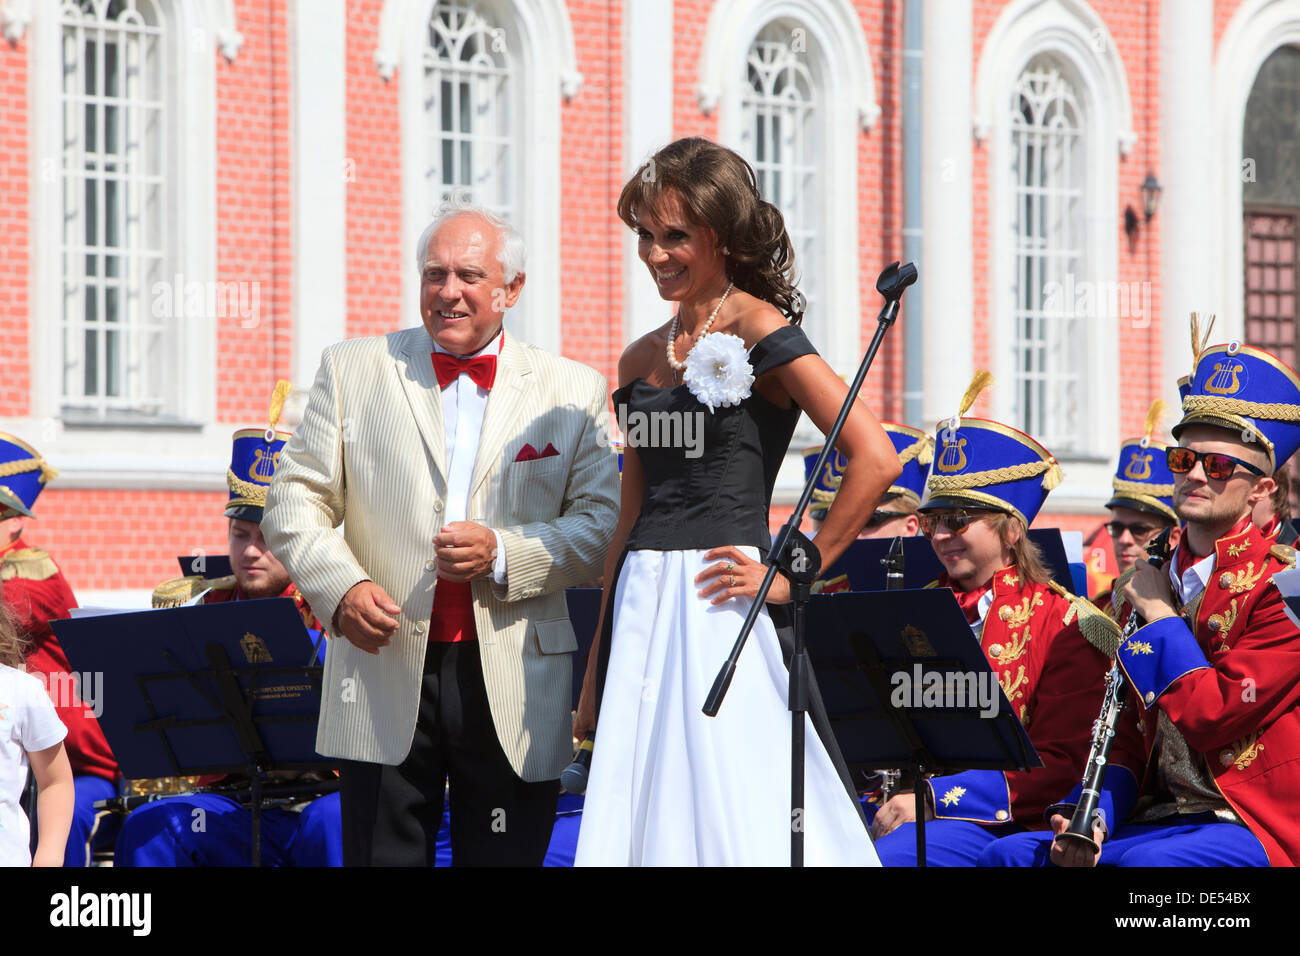 Famous local female singer and conductor during celebrations at the Kremlin in Kolomna, Russia - Stock Image